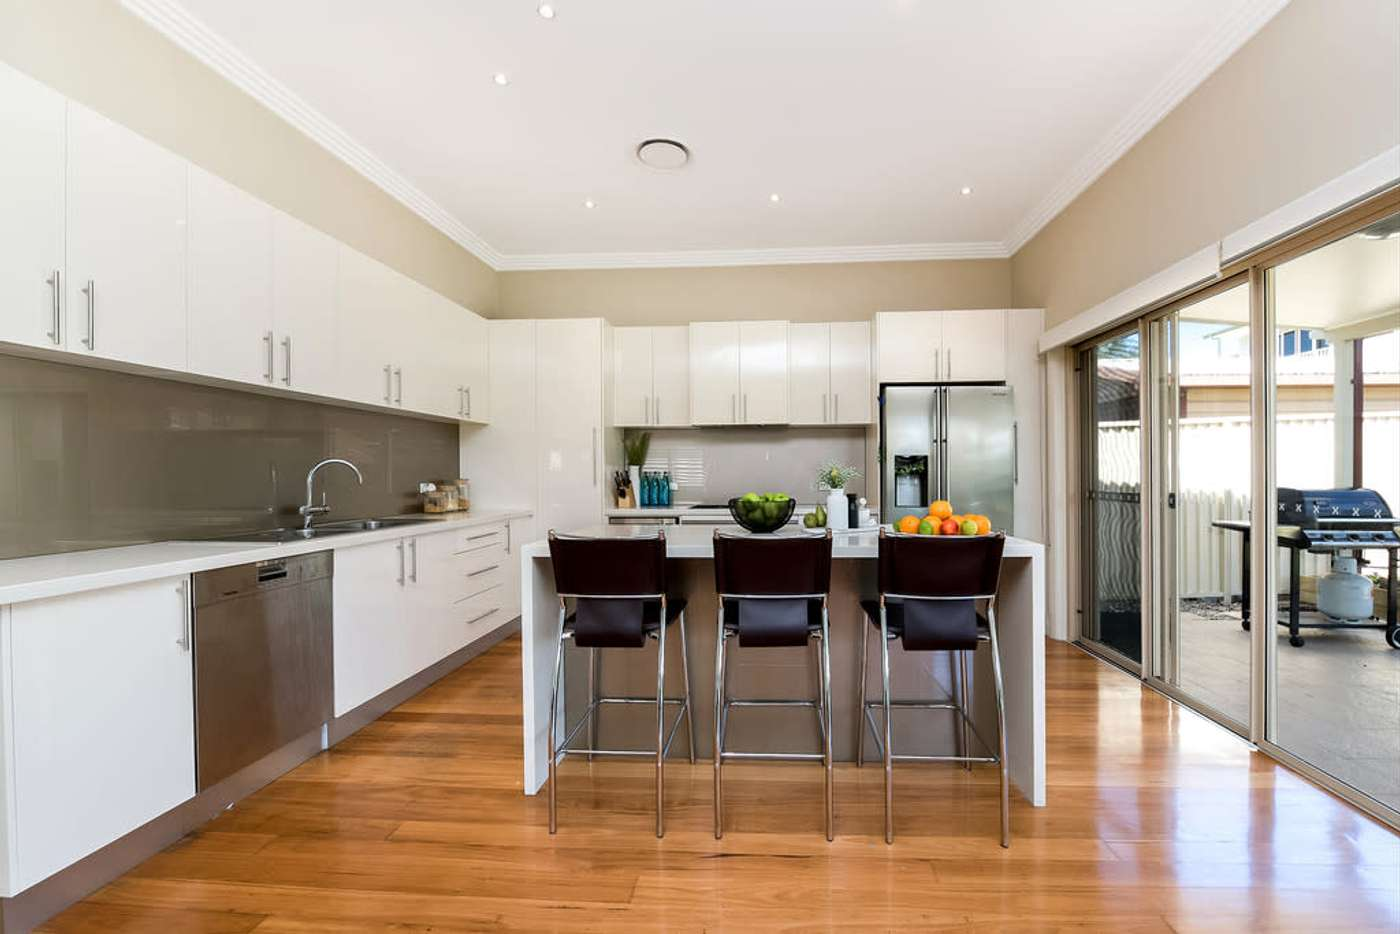 Fifth view of Homely house listing, 17 Kirrang Street, Wareemba NSW 2046